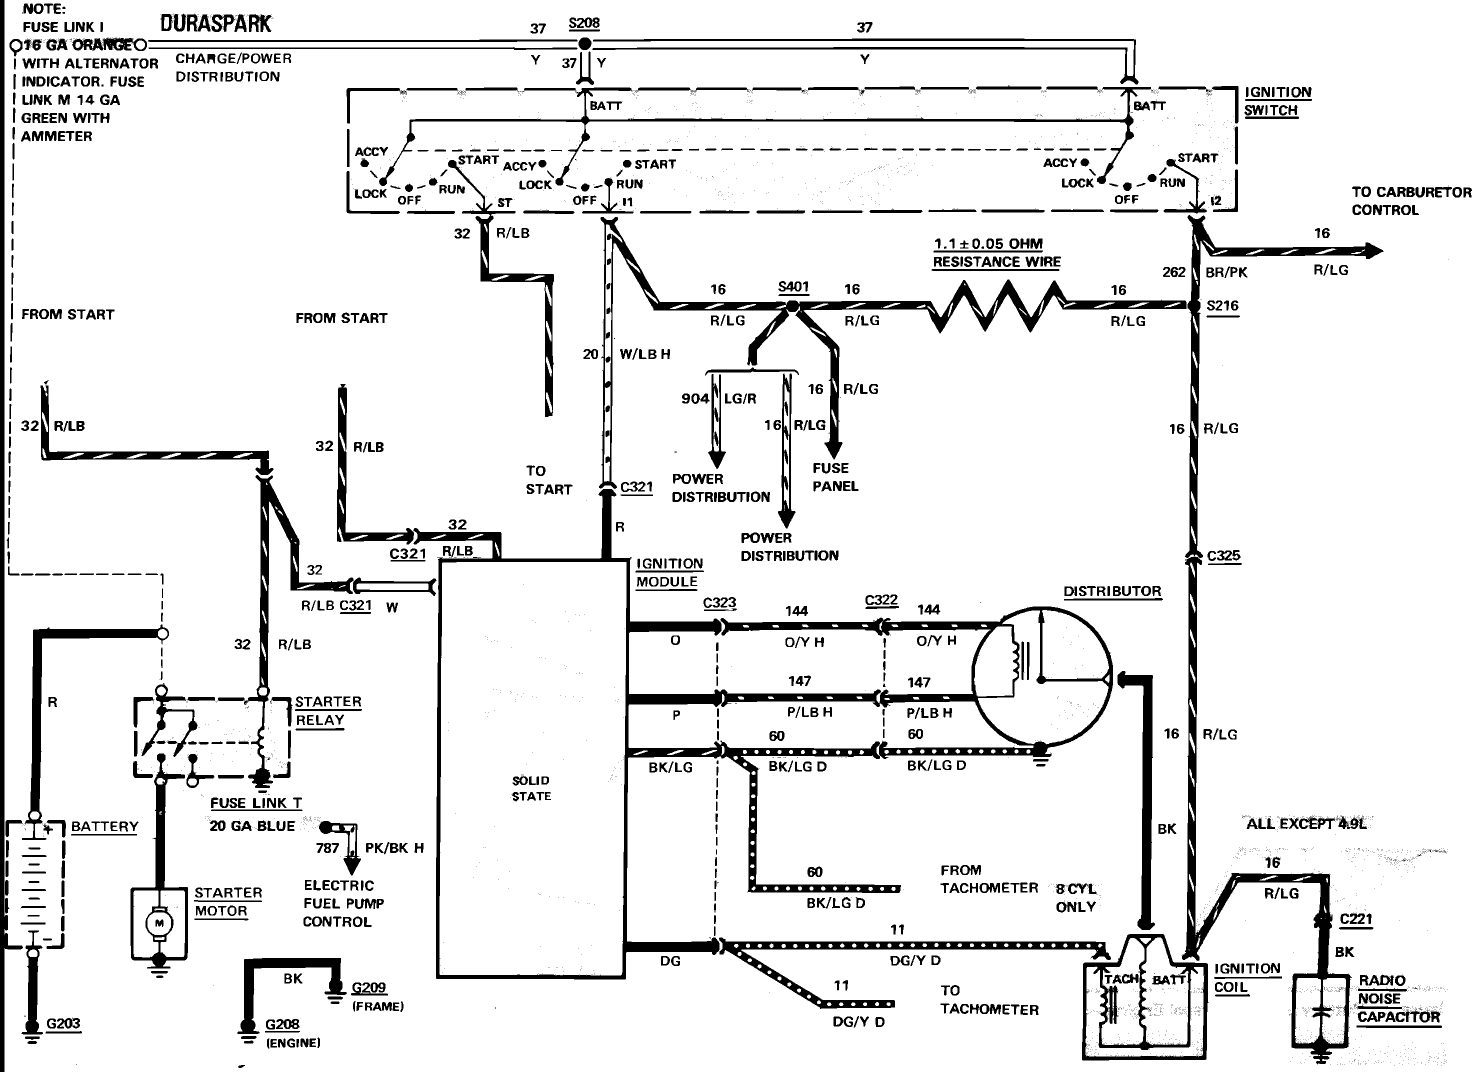 hight resolution of  89 e150 wiring diagram 1987 ford f 250 wiring diagram wiring diagram databaseford f150 ignition wiring diagram